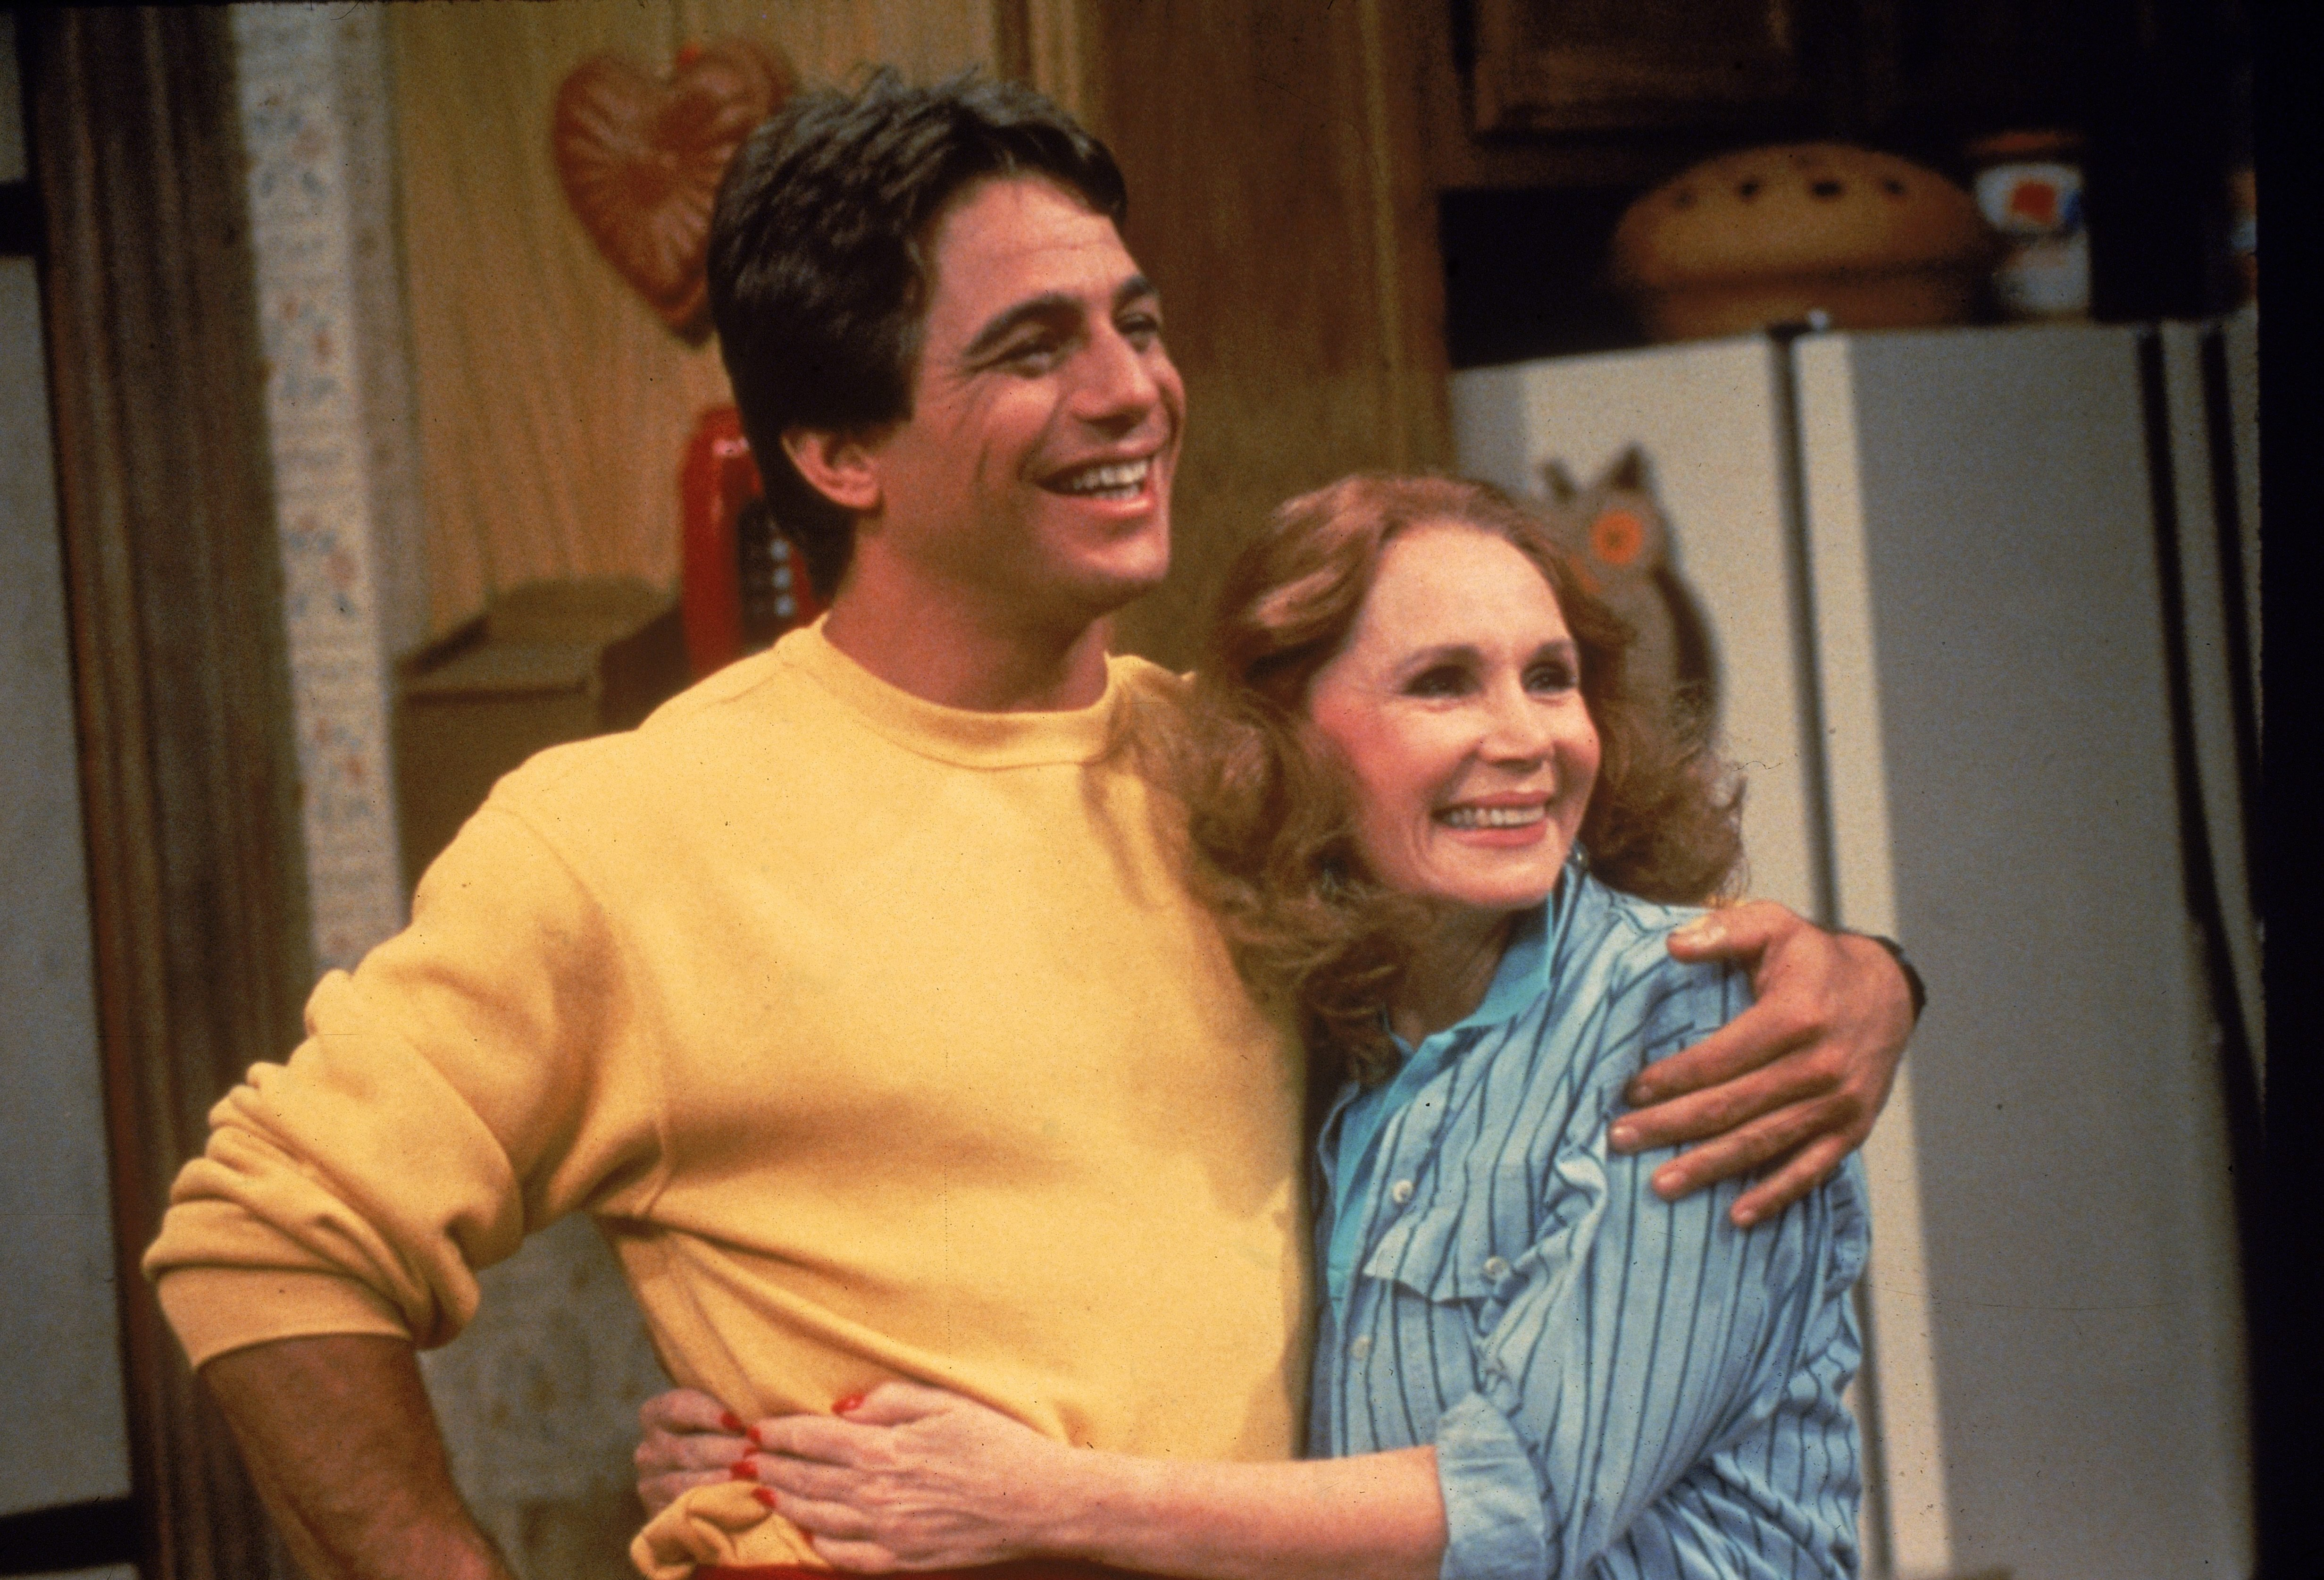 Tony Danza & K. Helmond In 'Who's The Boss'